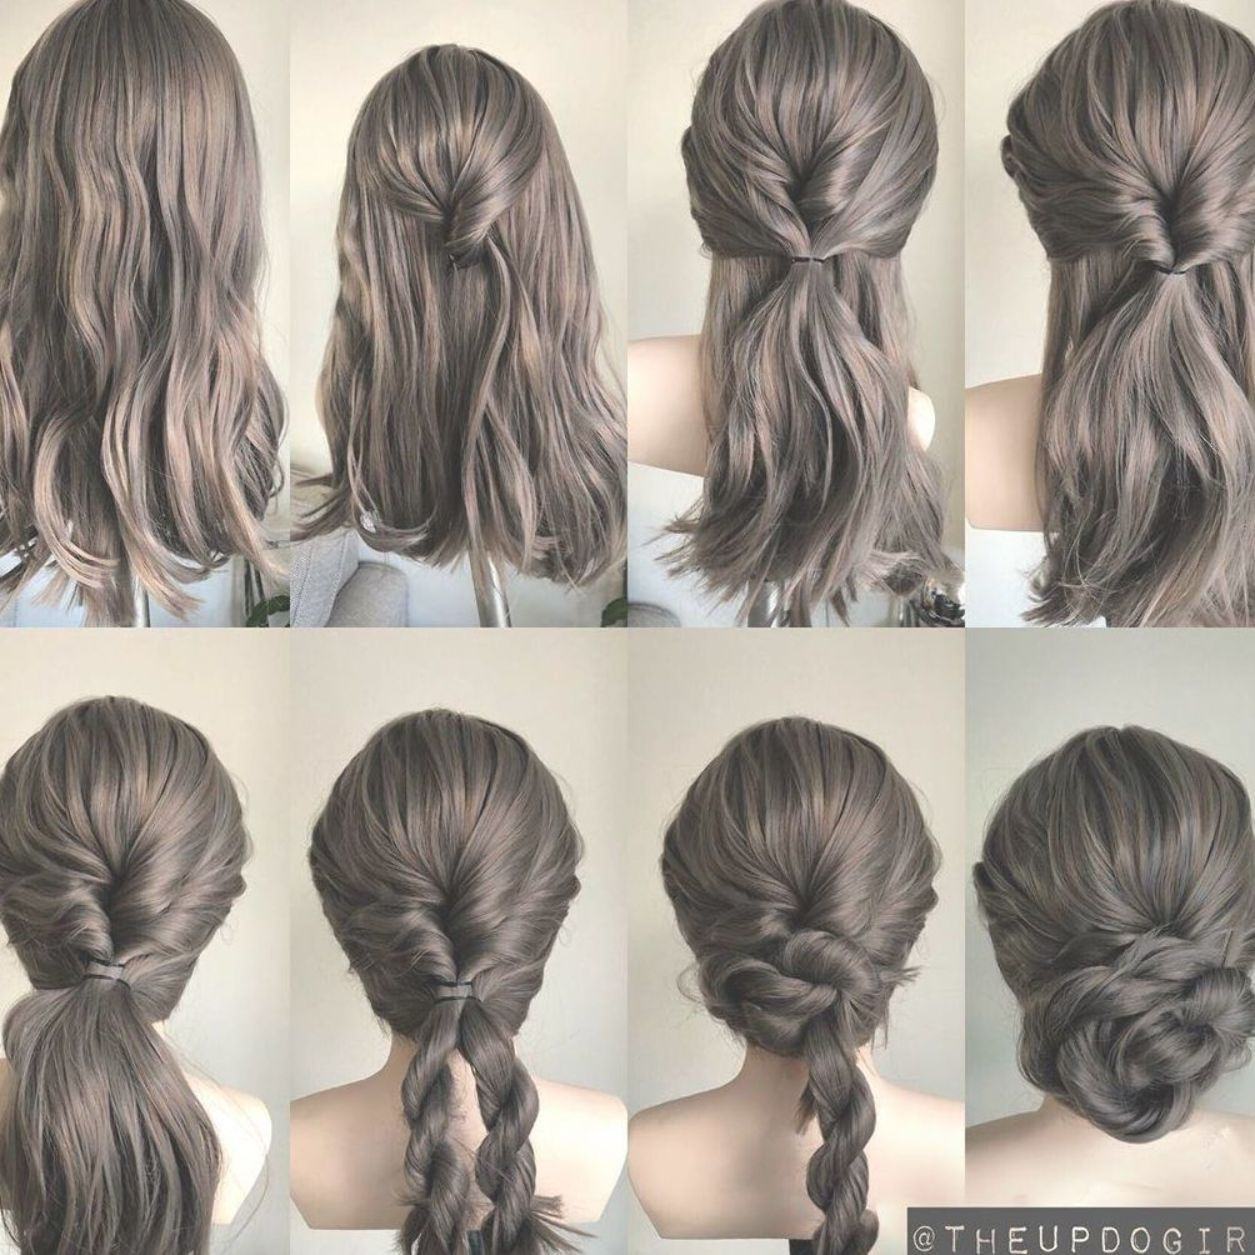 Gorgeous And Easy Homecoming Hairstyles Tutorial For Women With Medium Shoulder Length To Long Hair Hair Styles Easy Homecoming Hairstyles Long Hair Styles